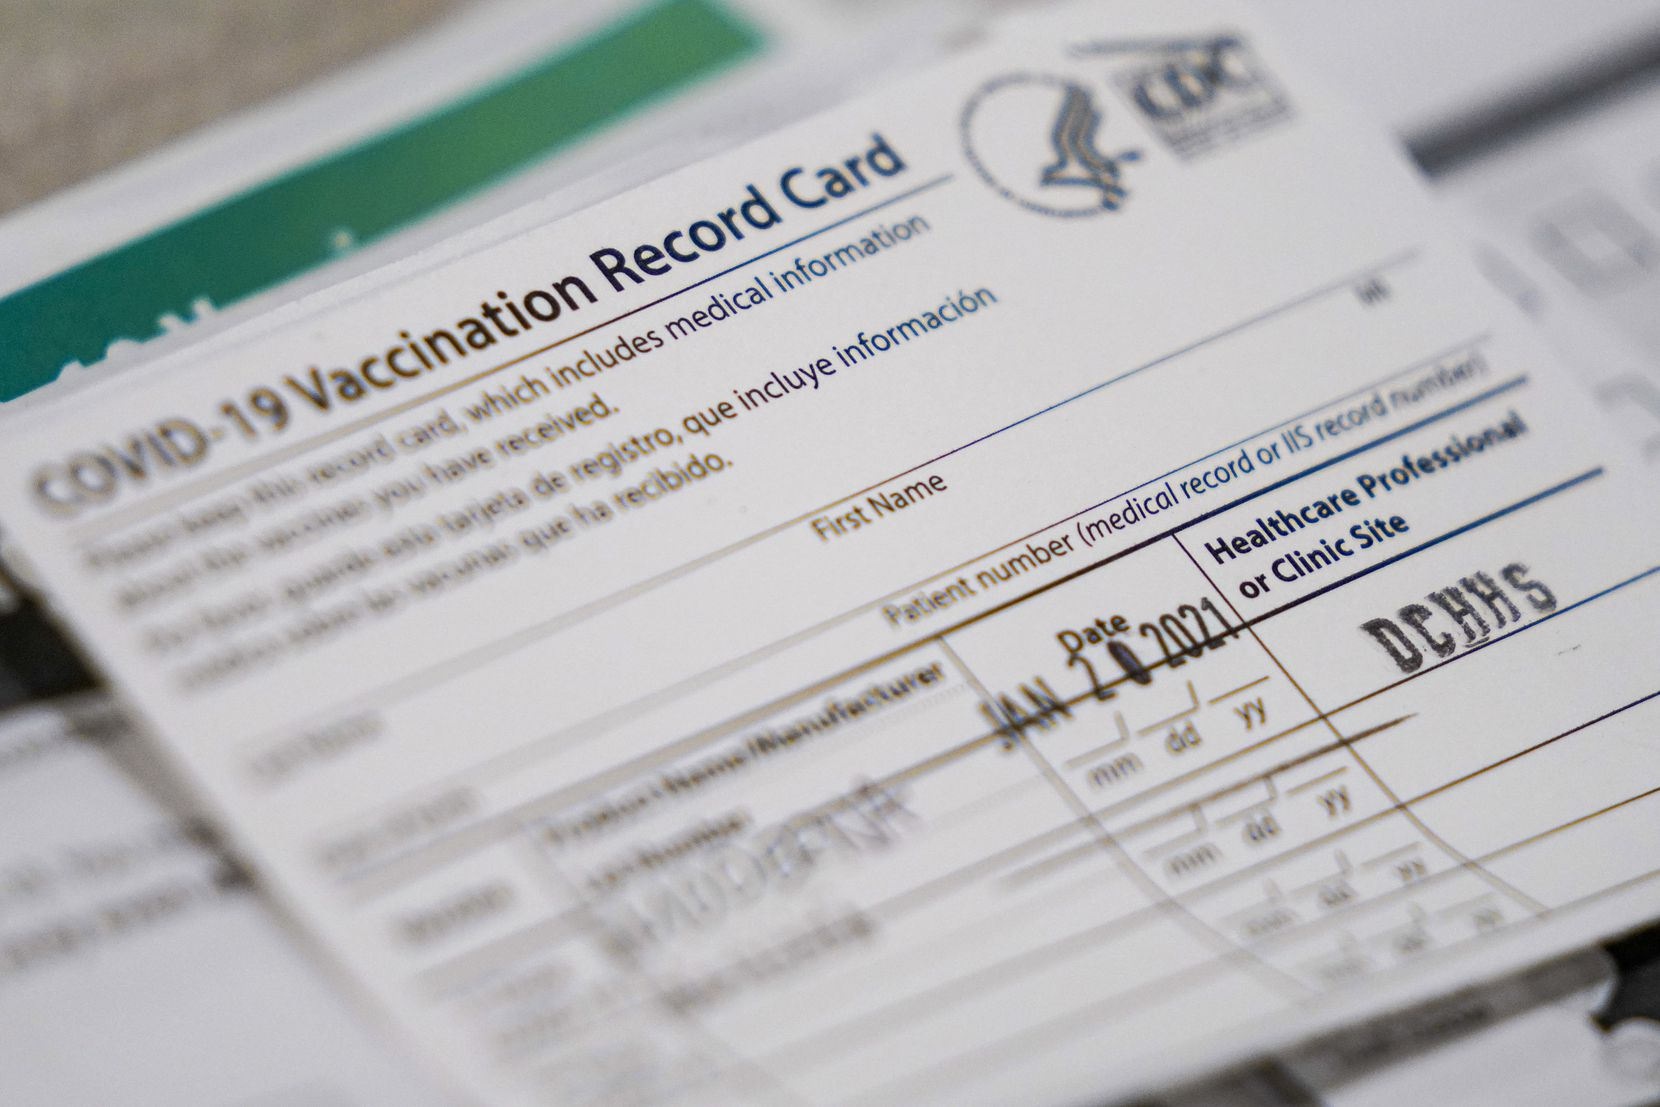 A vaccination record cards sit ready at a station at the Dallas County  COVID-19 mega-vaccination site at Fair Park on Friday, Jan. 22, 2021, in Dallas.